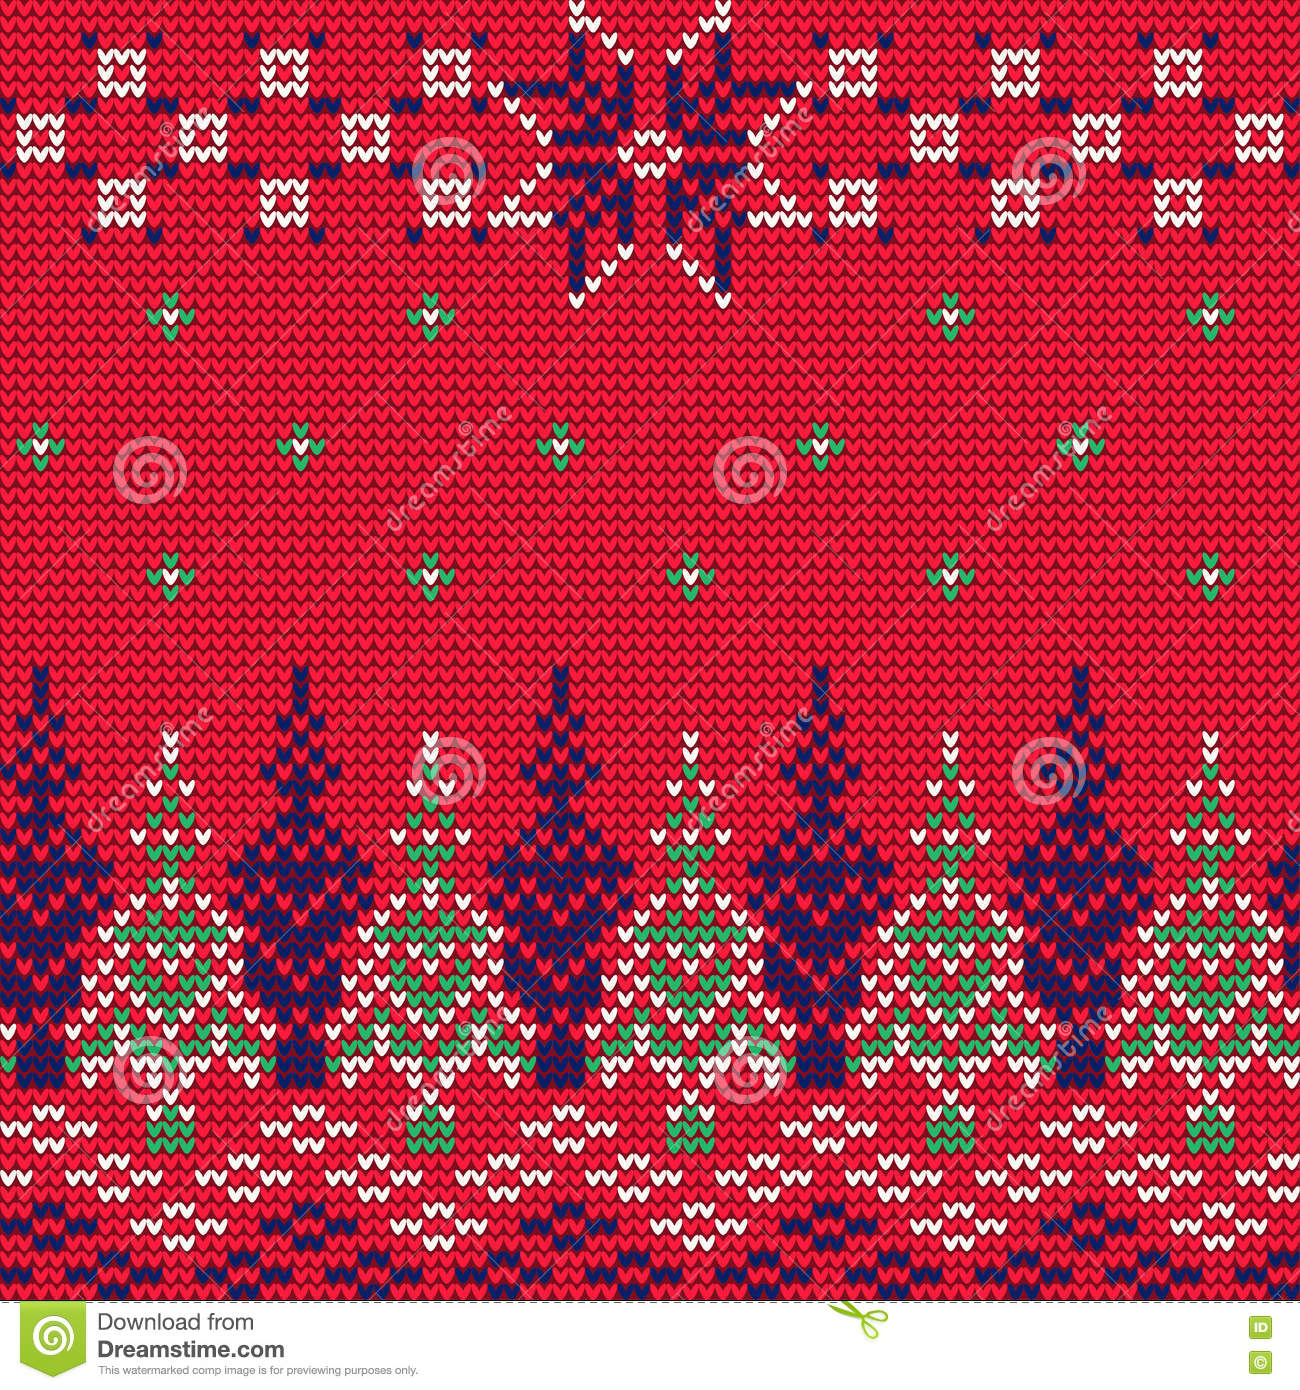 4832617e917e5 Ugly sweater Pattern stock vector. Illustration of knitwear - 79290458